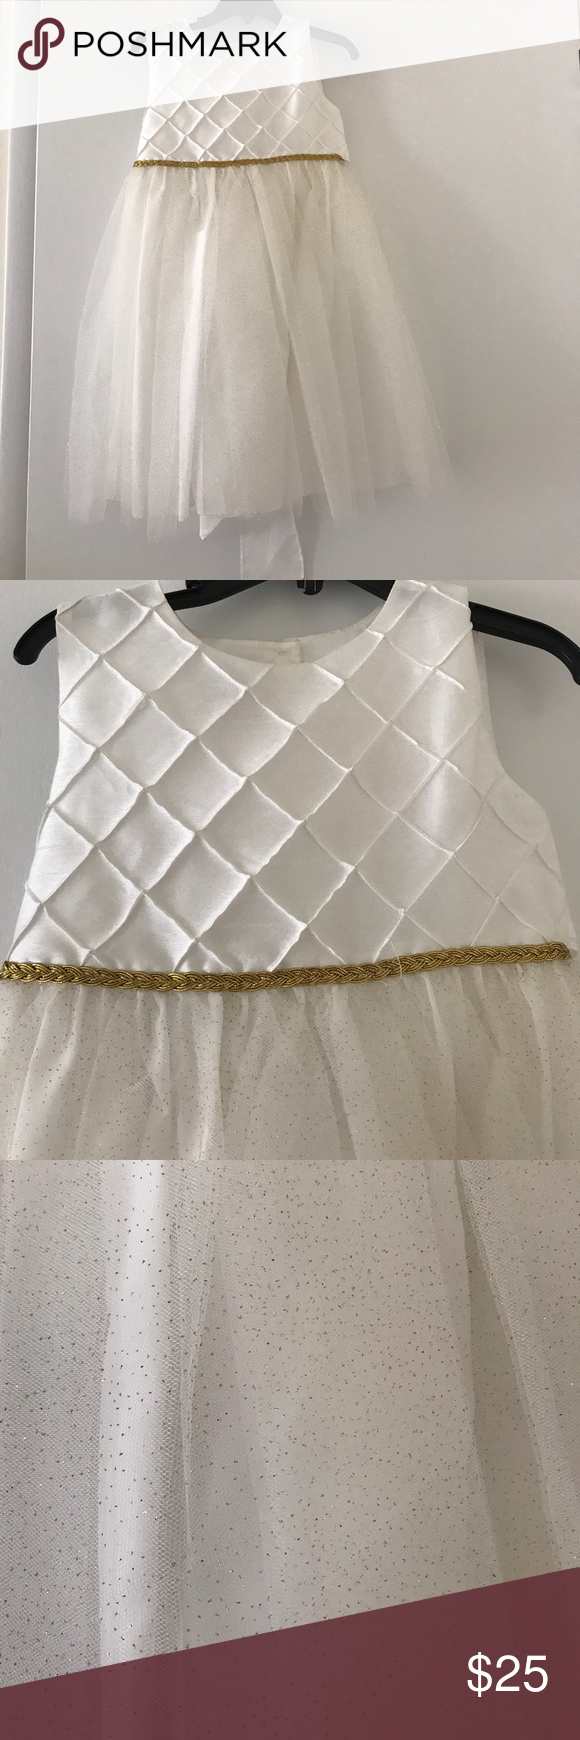 Cute White Dress Cute White Dress For Little Girls Size 4t Dress Has A Gold Trim And Light Gold Glitter In The Bottom H Cute White Dress White Dress Dresses [ 1740 x 580 Pixel ]